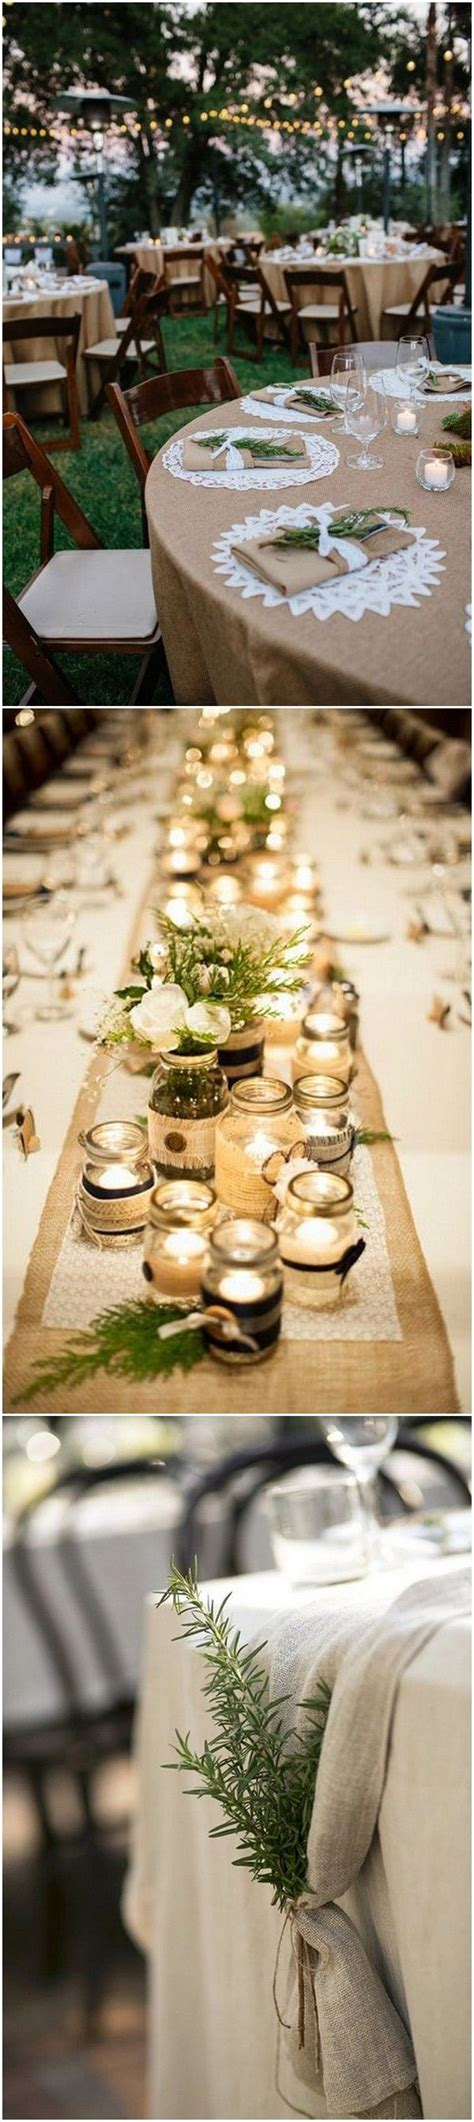 rustic table decorations 20 brilliant wedding table decoration ideas page 2 of 2